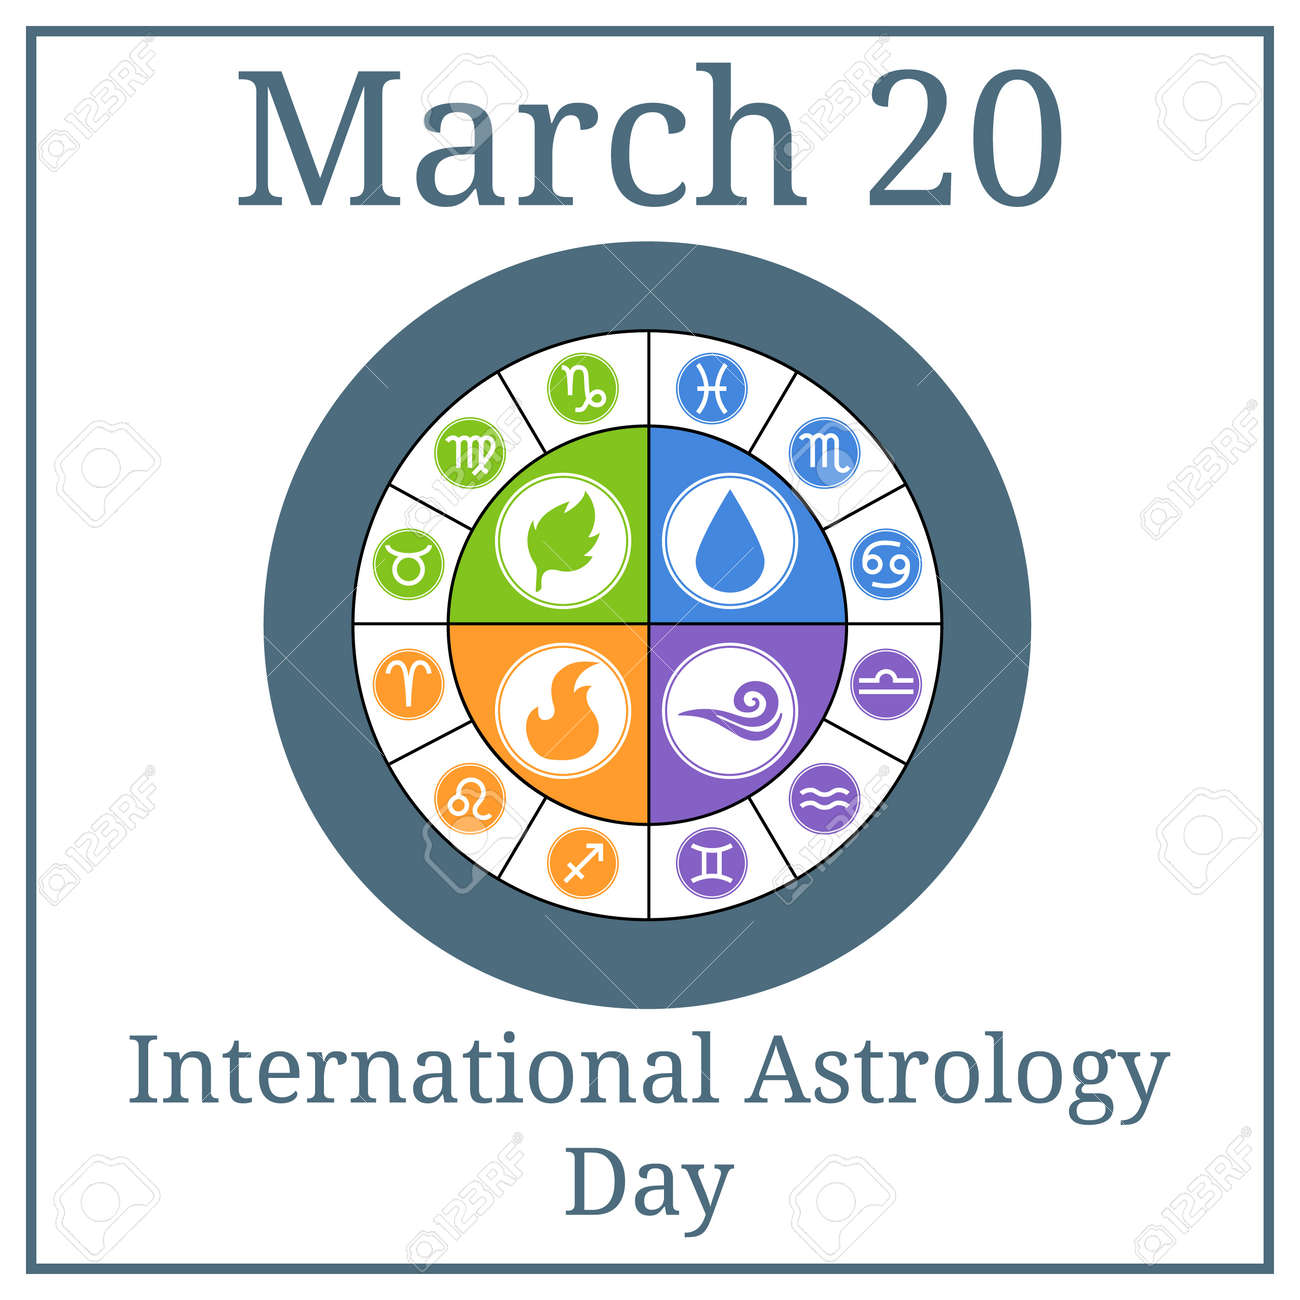 march 20 horoscope signs